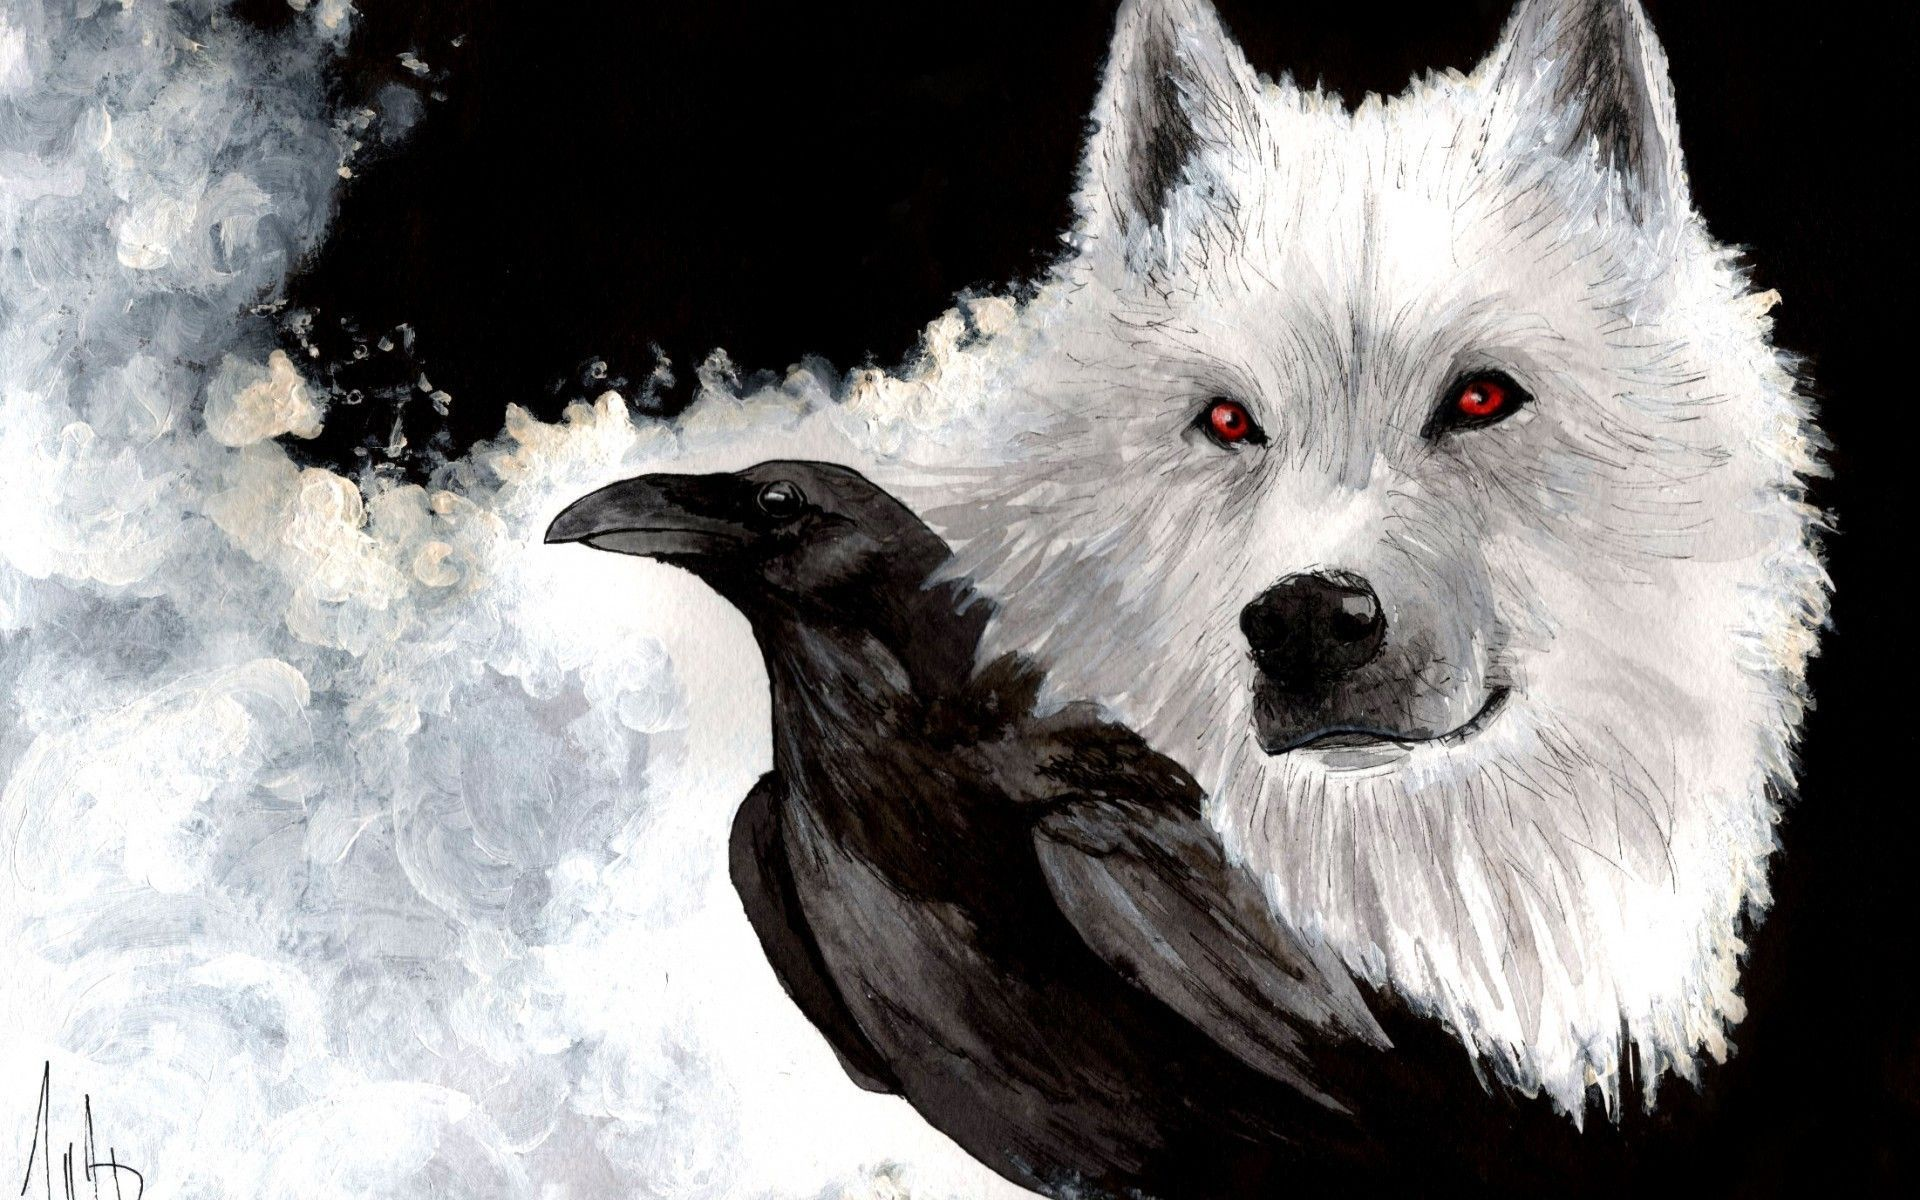 Raven And Wolf Wallpapers On Wallpaperdog